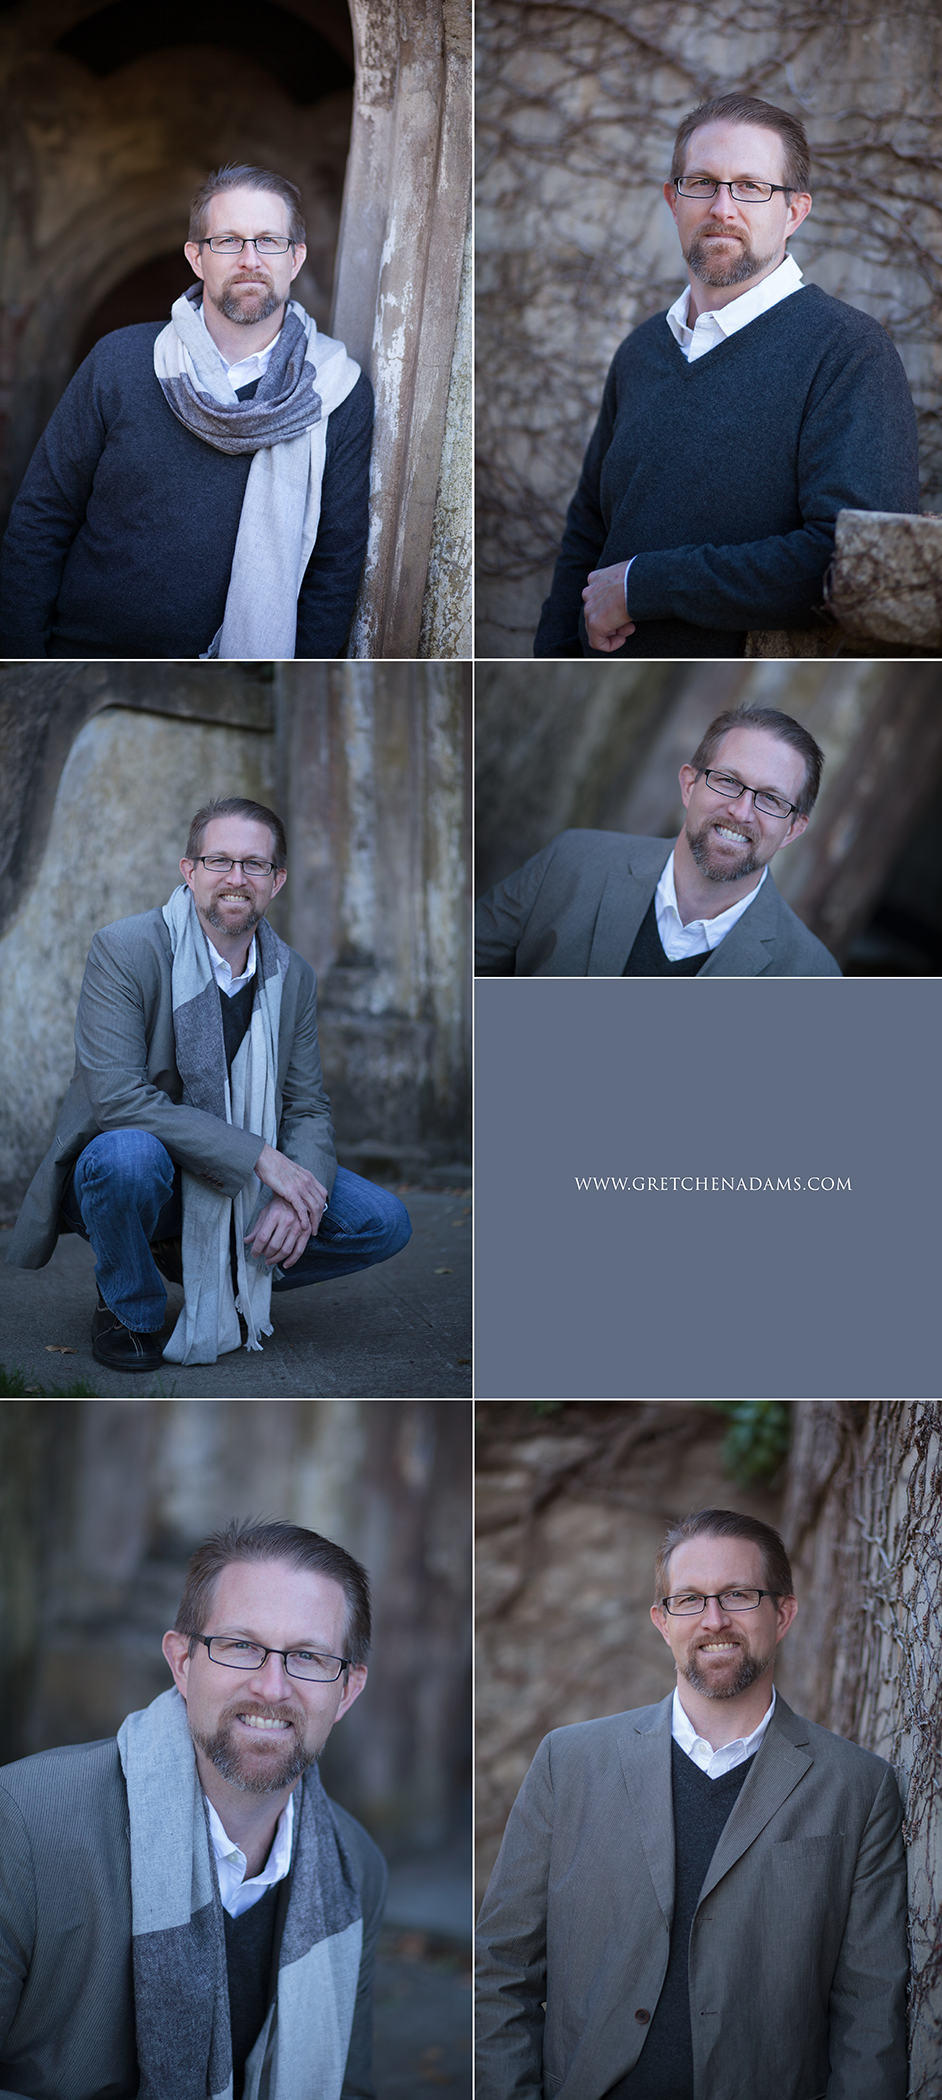 Outdoor business headshots for men SF Bay Area